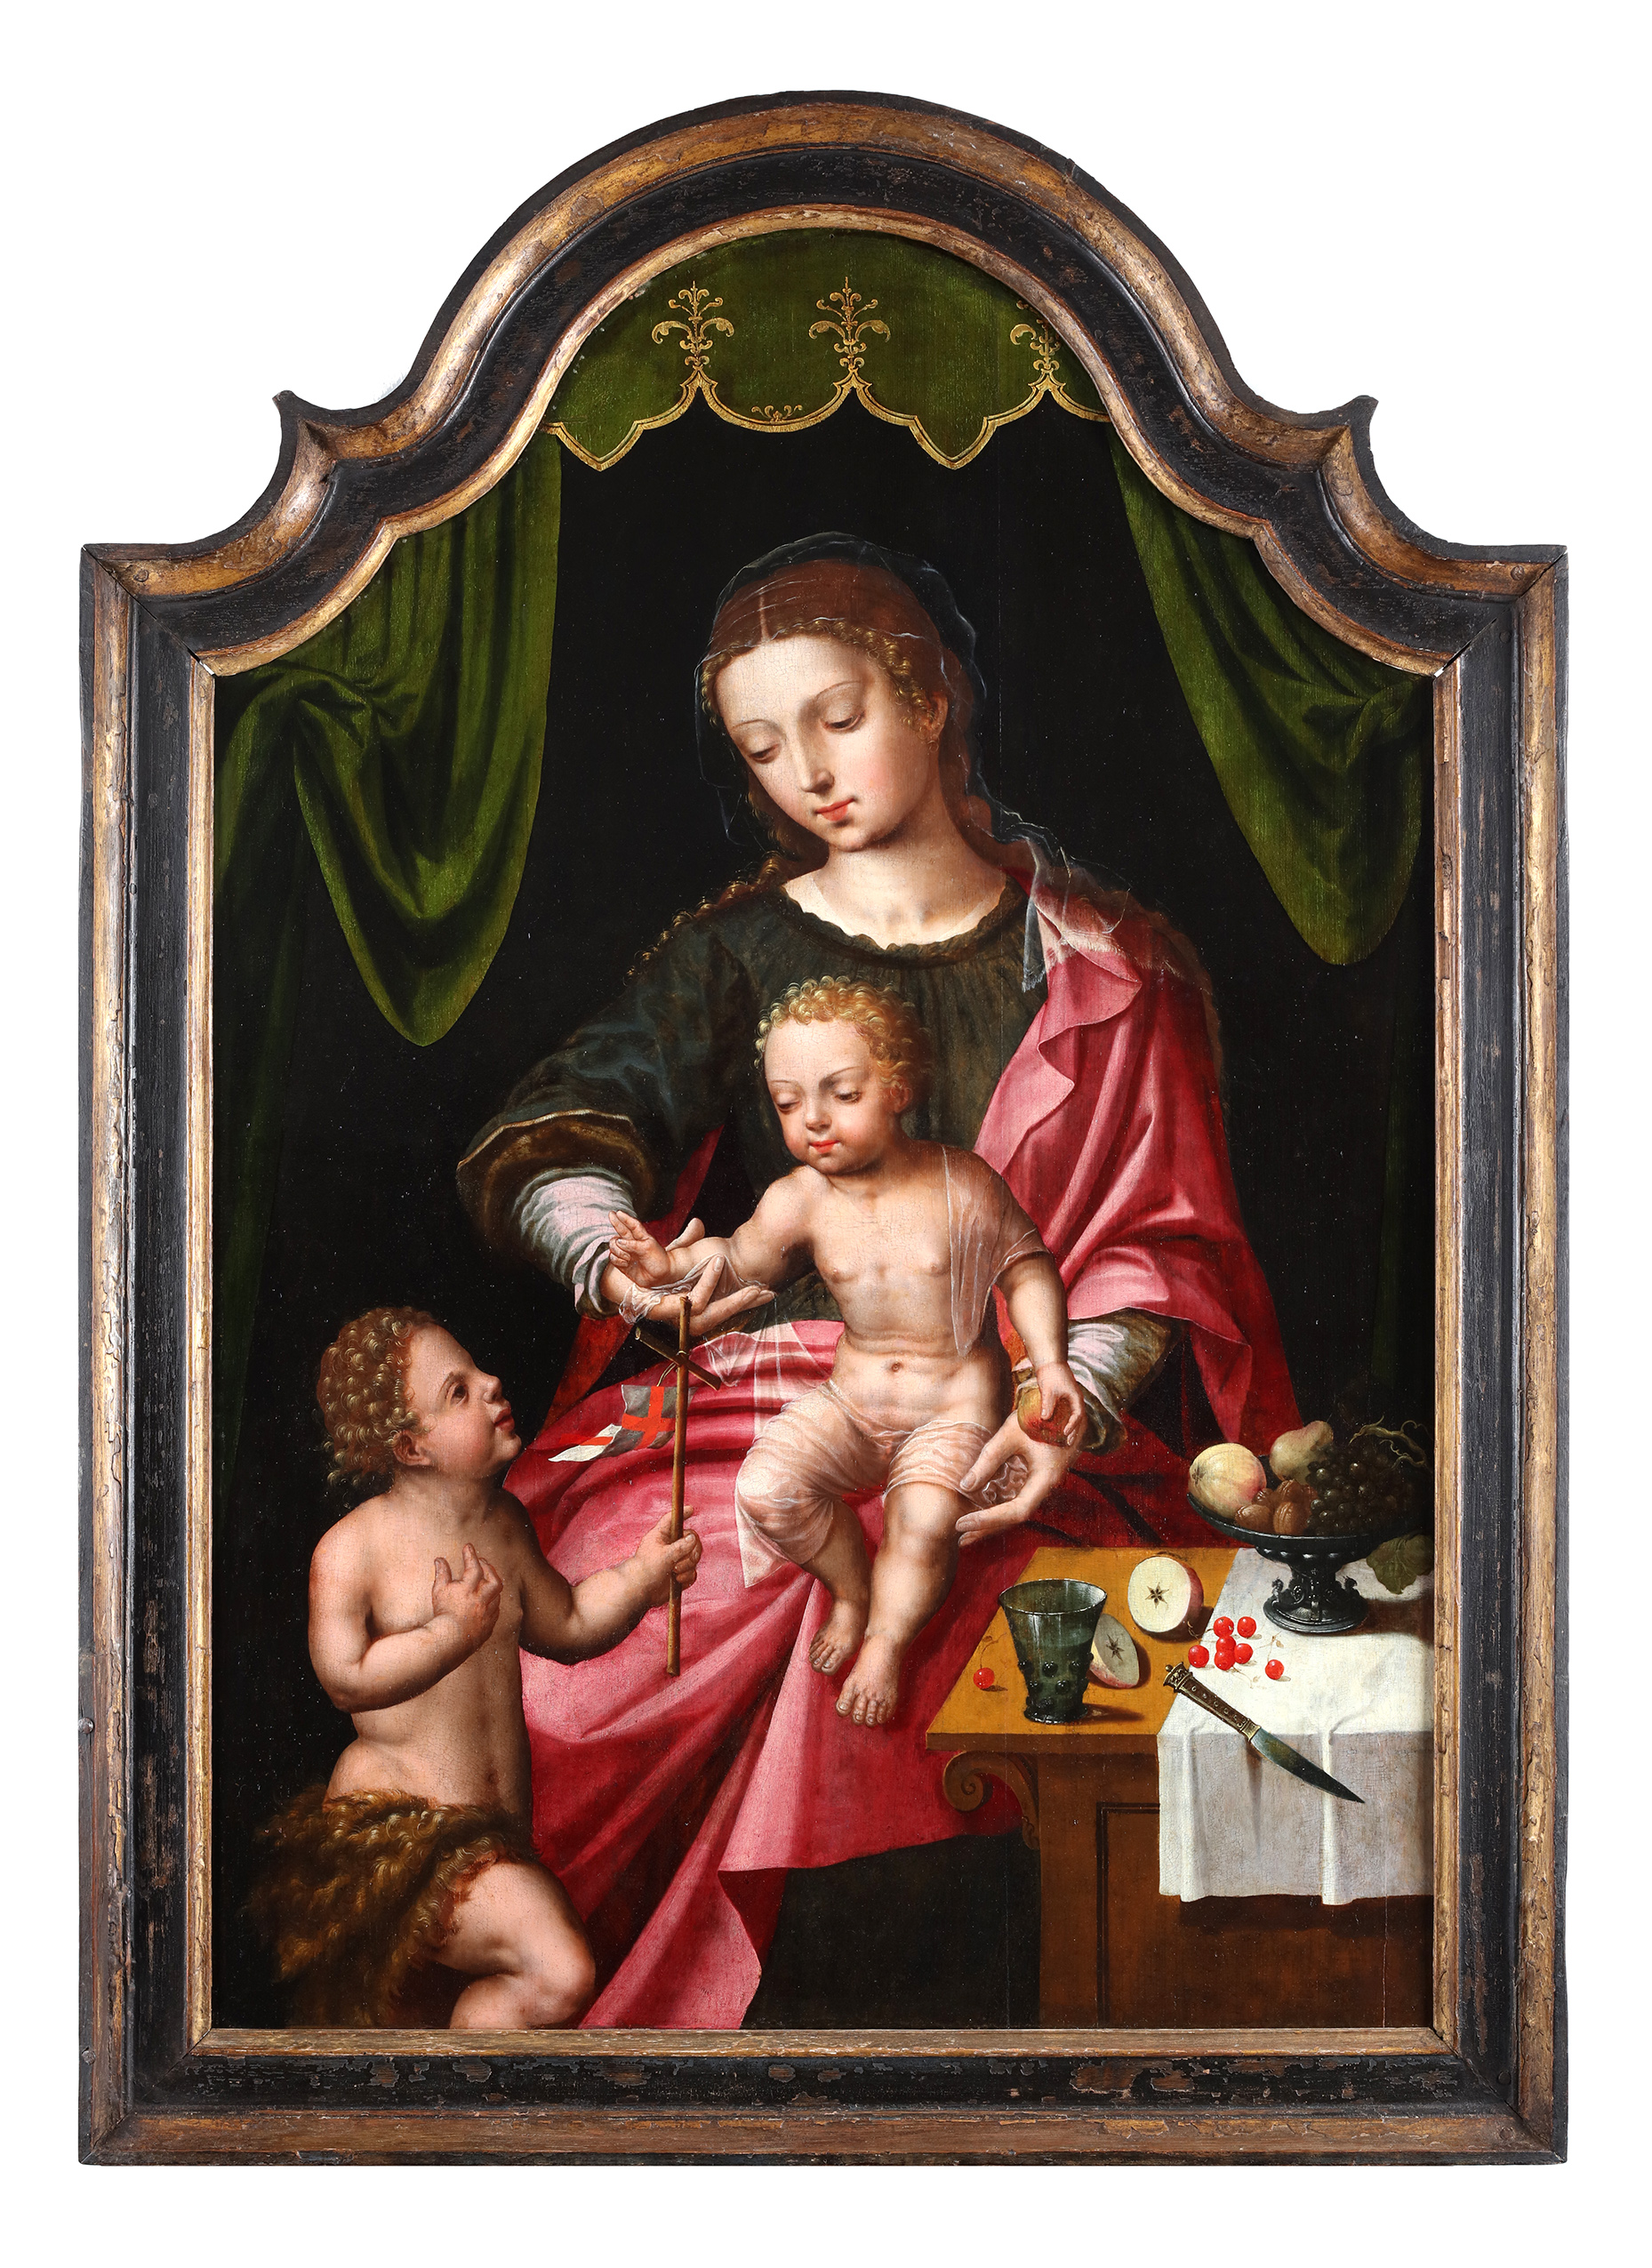 A seated Virgin and Child, with Saint John Baptist kneeling on the left, a still life of fruits on a buffet on the right